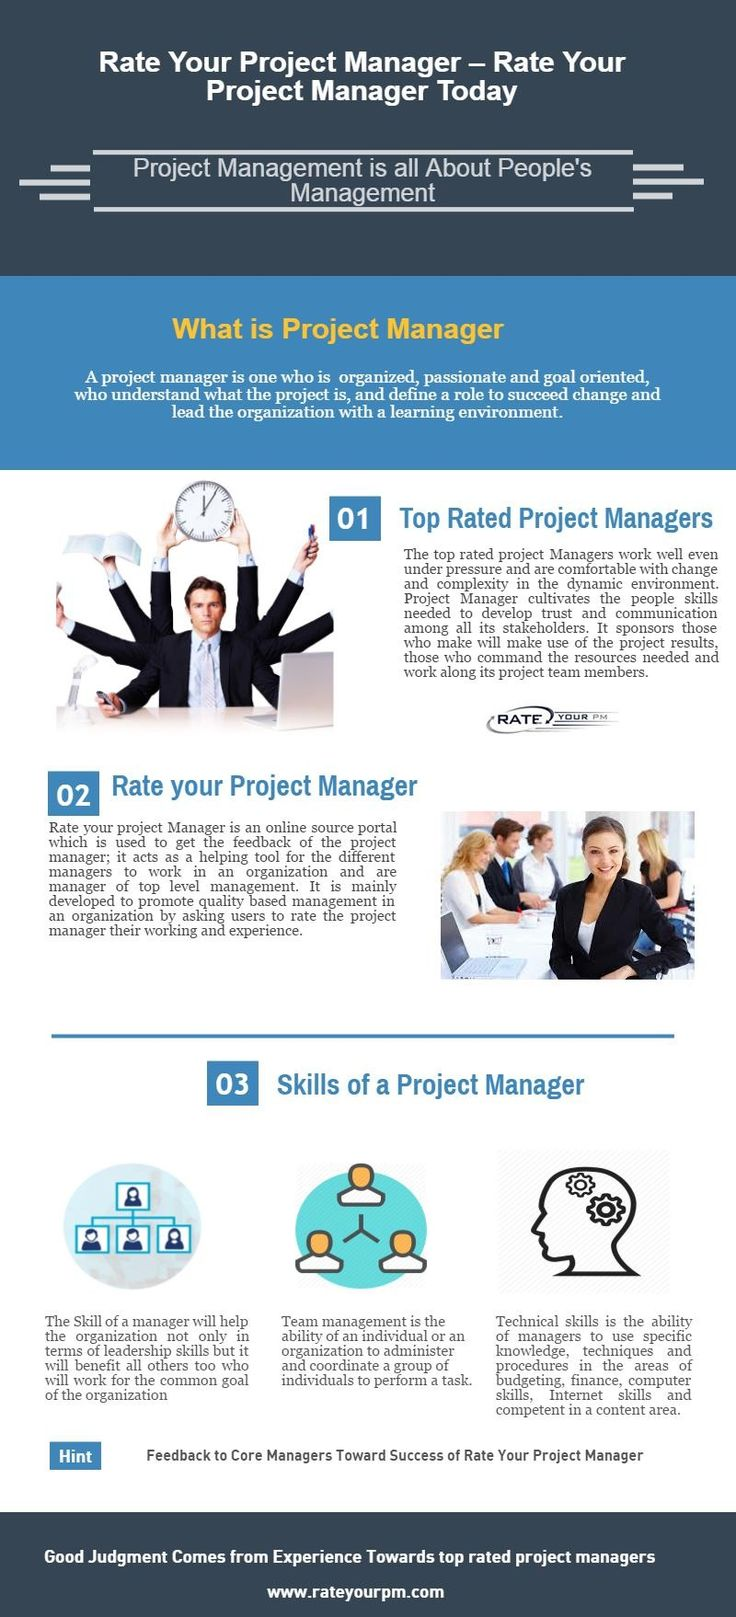 Rate your PM - Feedback to project manager  Project manager is all about managing & controlling people.  Manager is the one who sees the way that all are working for a common goal towards the success of organization. Rate of project manager is all about providing the feedback to the project manager  http://www.rateyourpm.com/